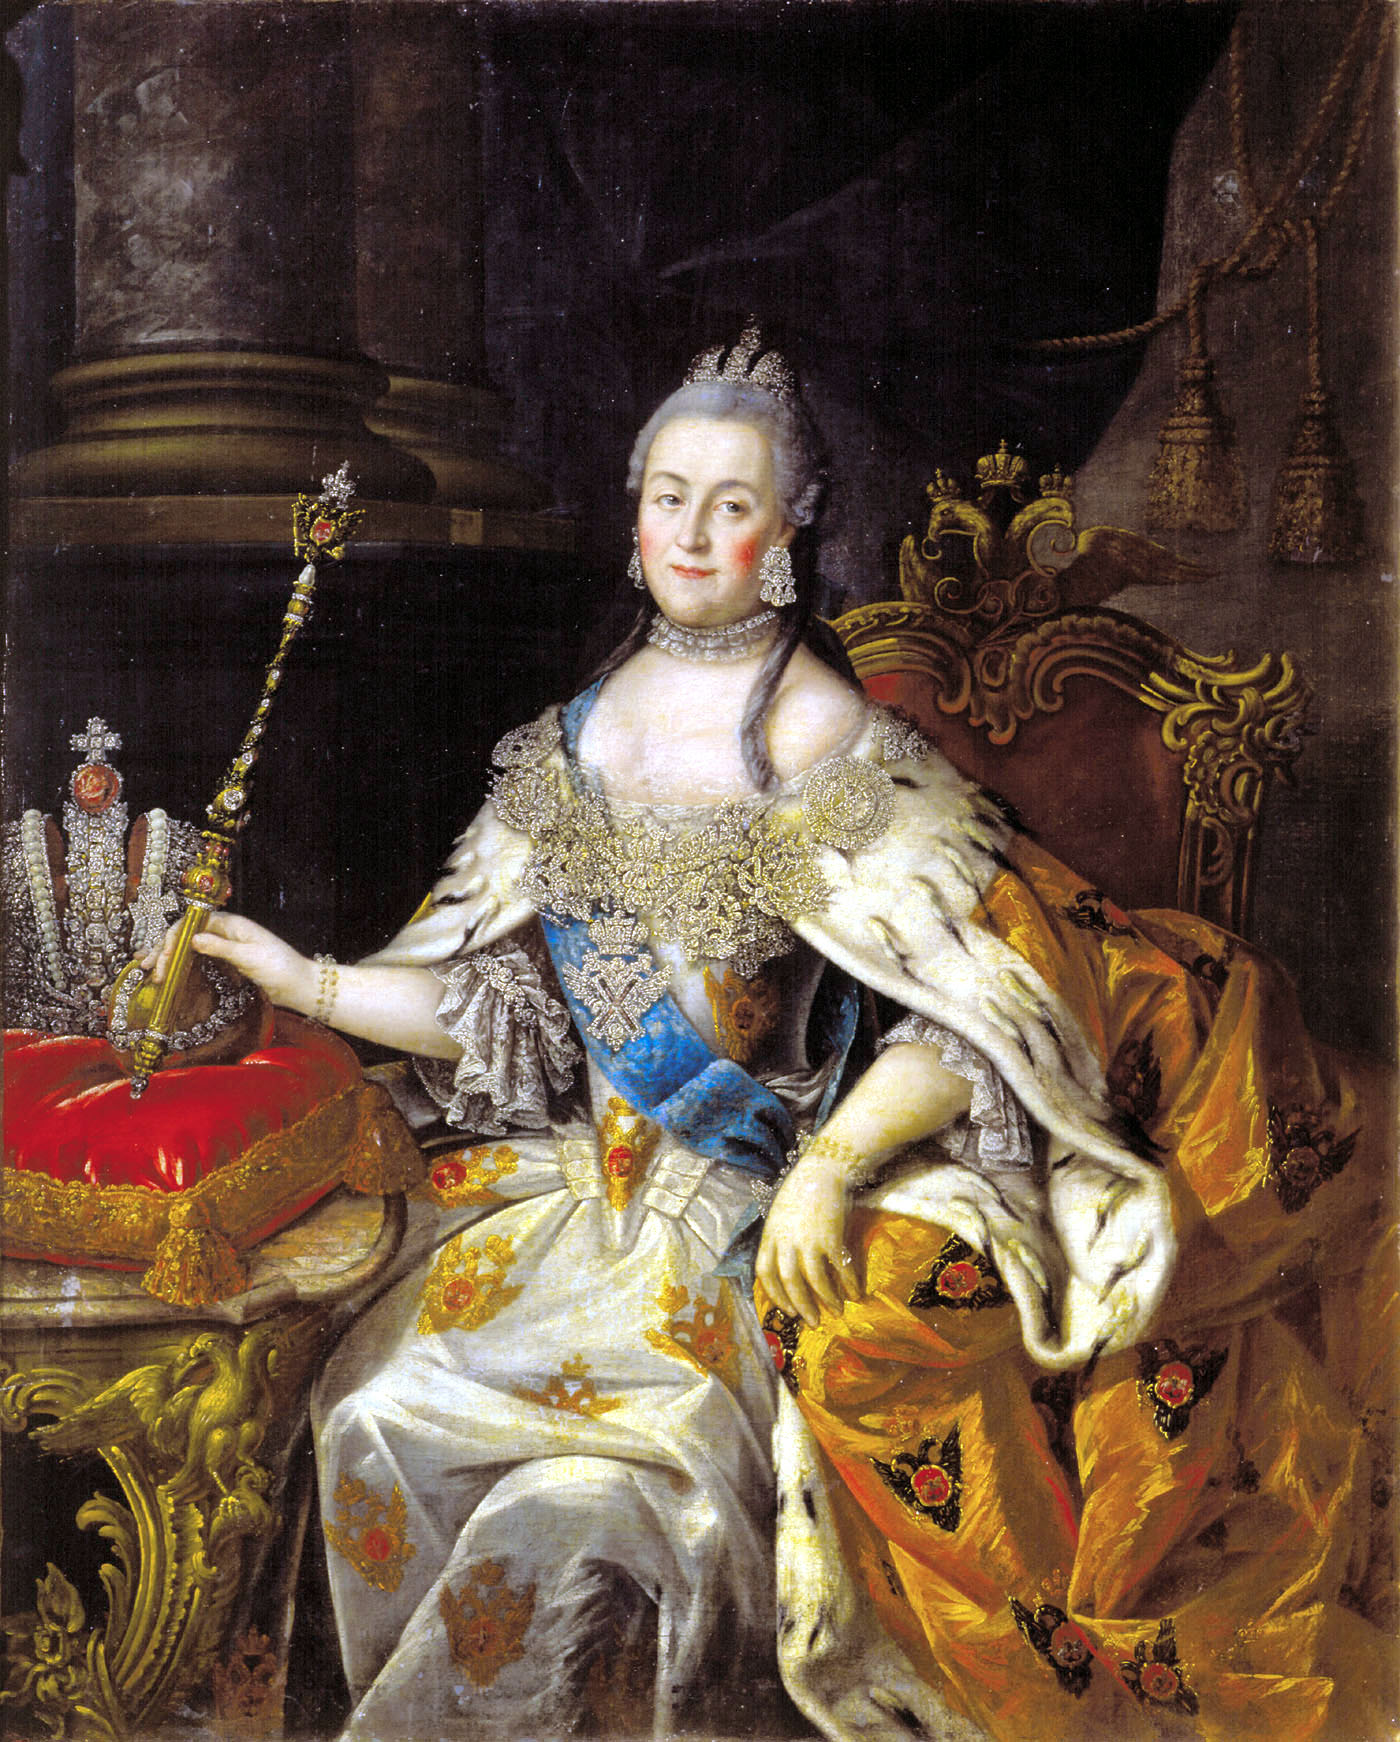 Catherine II by Alexey Andropov 18th century